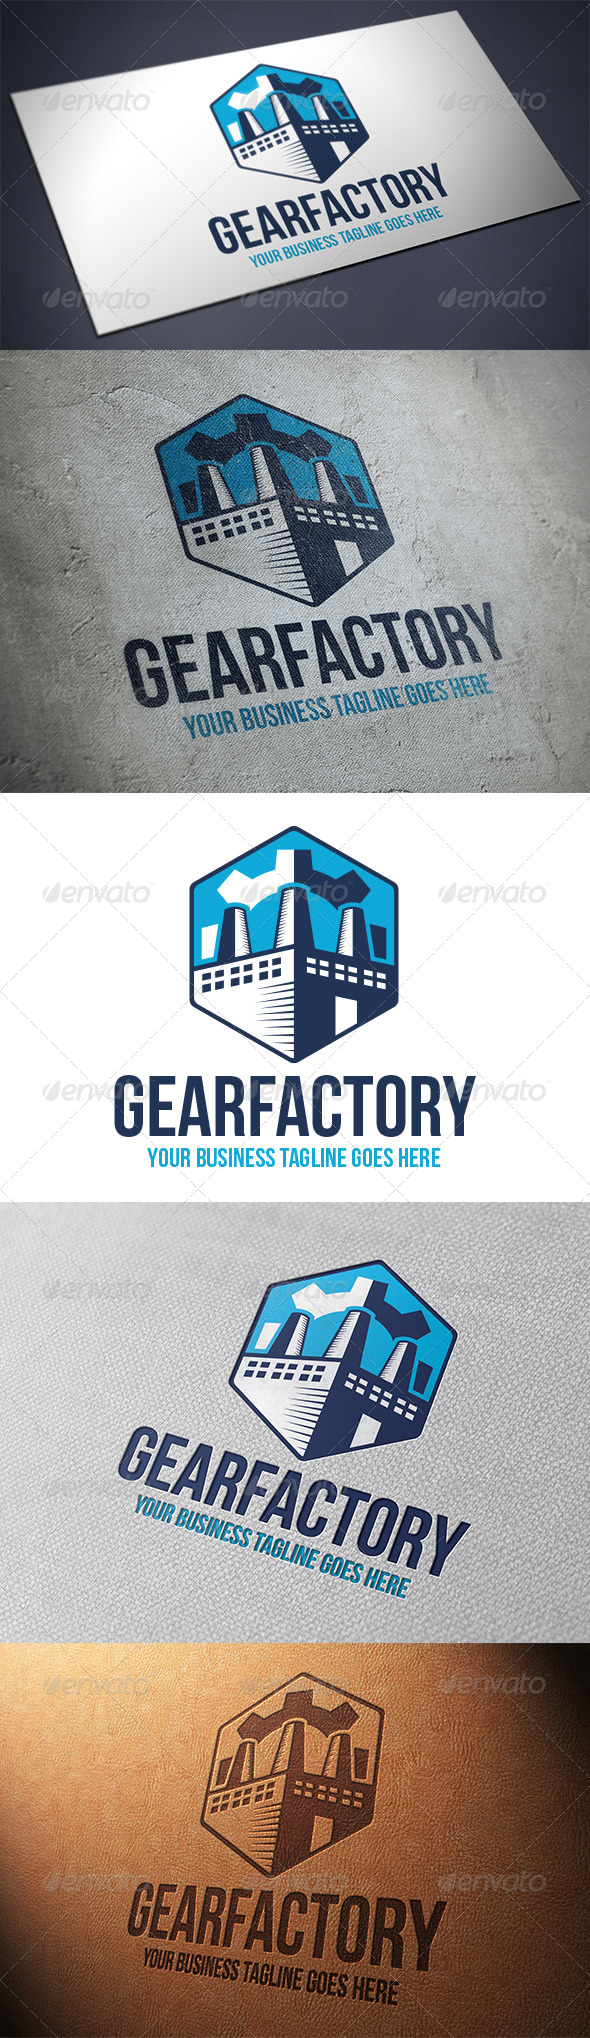 Gear Factory Logo - Buildings Logo Templates